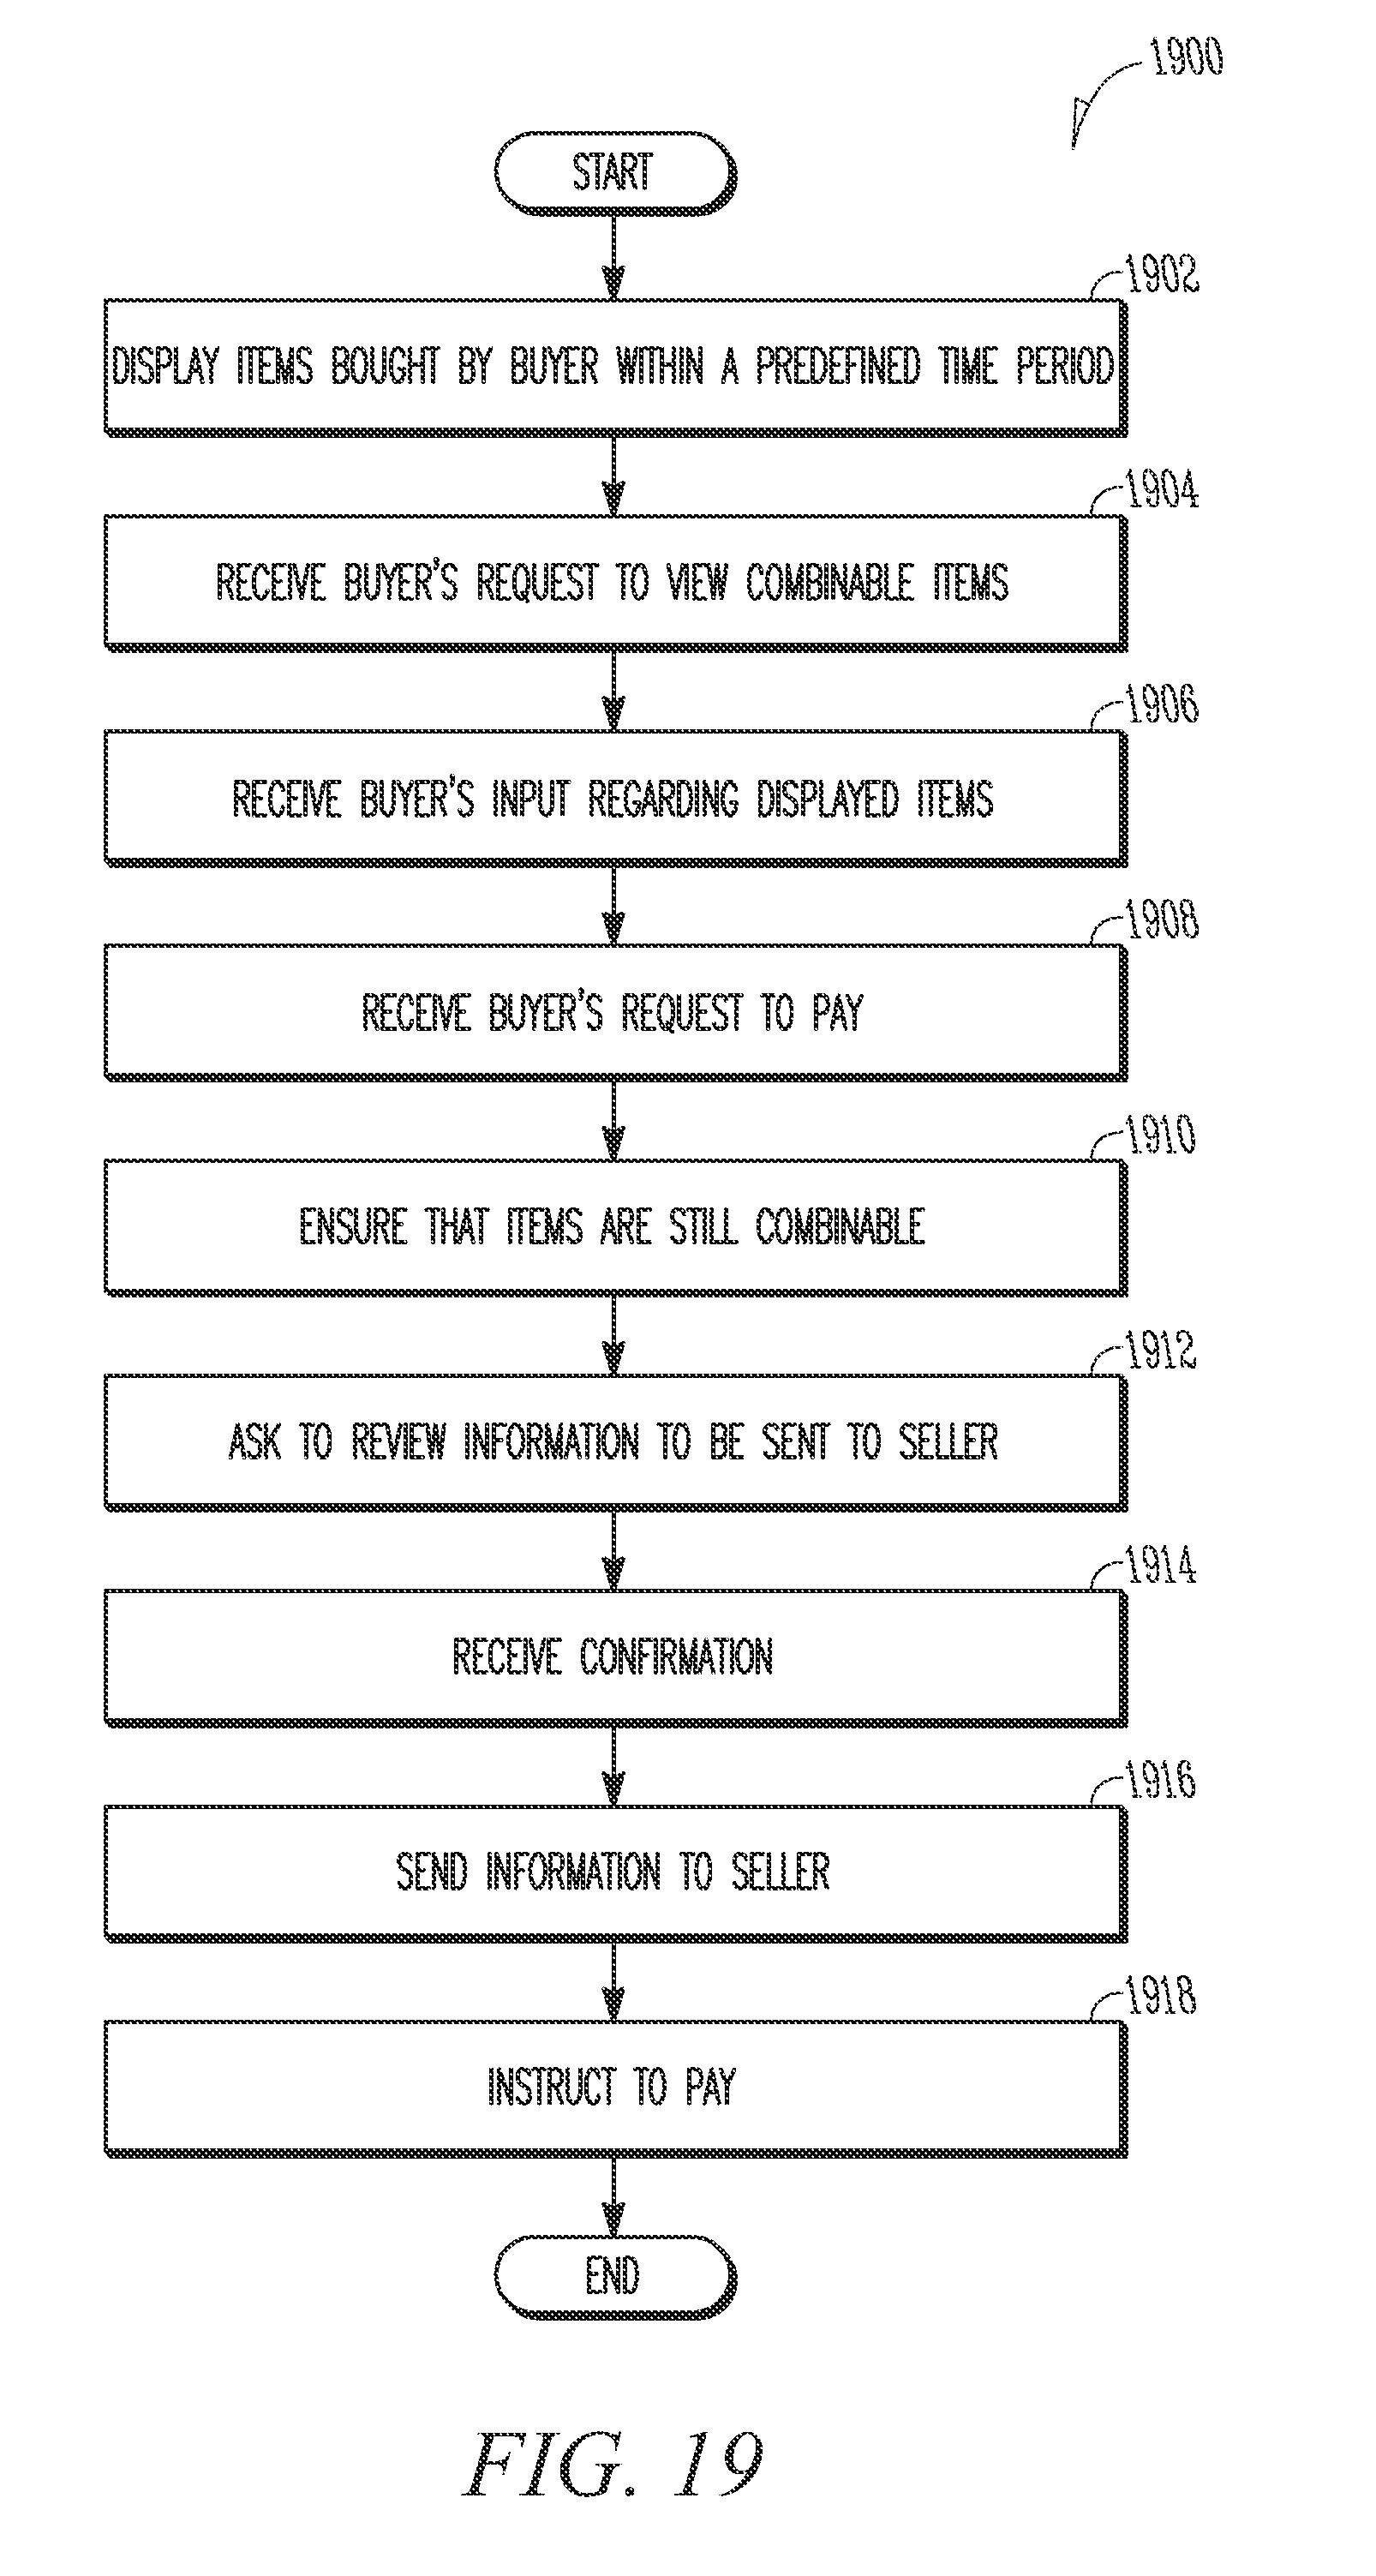 What Does Po Number Mean On An Invoice Pdf Patent Us  Invoicing System  Google Patents Invoice For Export Pdf with Pre Invoice Excel Patent Drawing Return Receipt Email Word